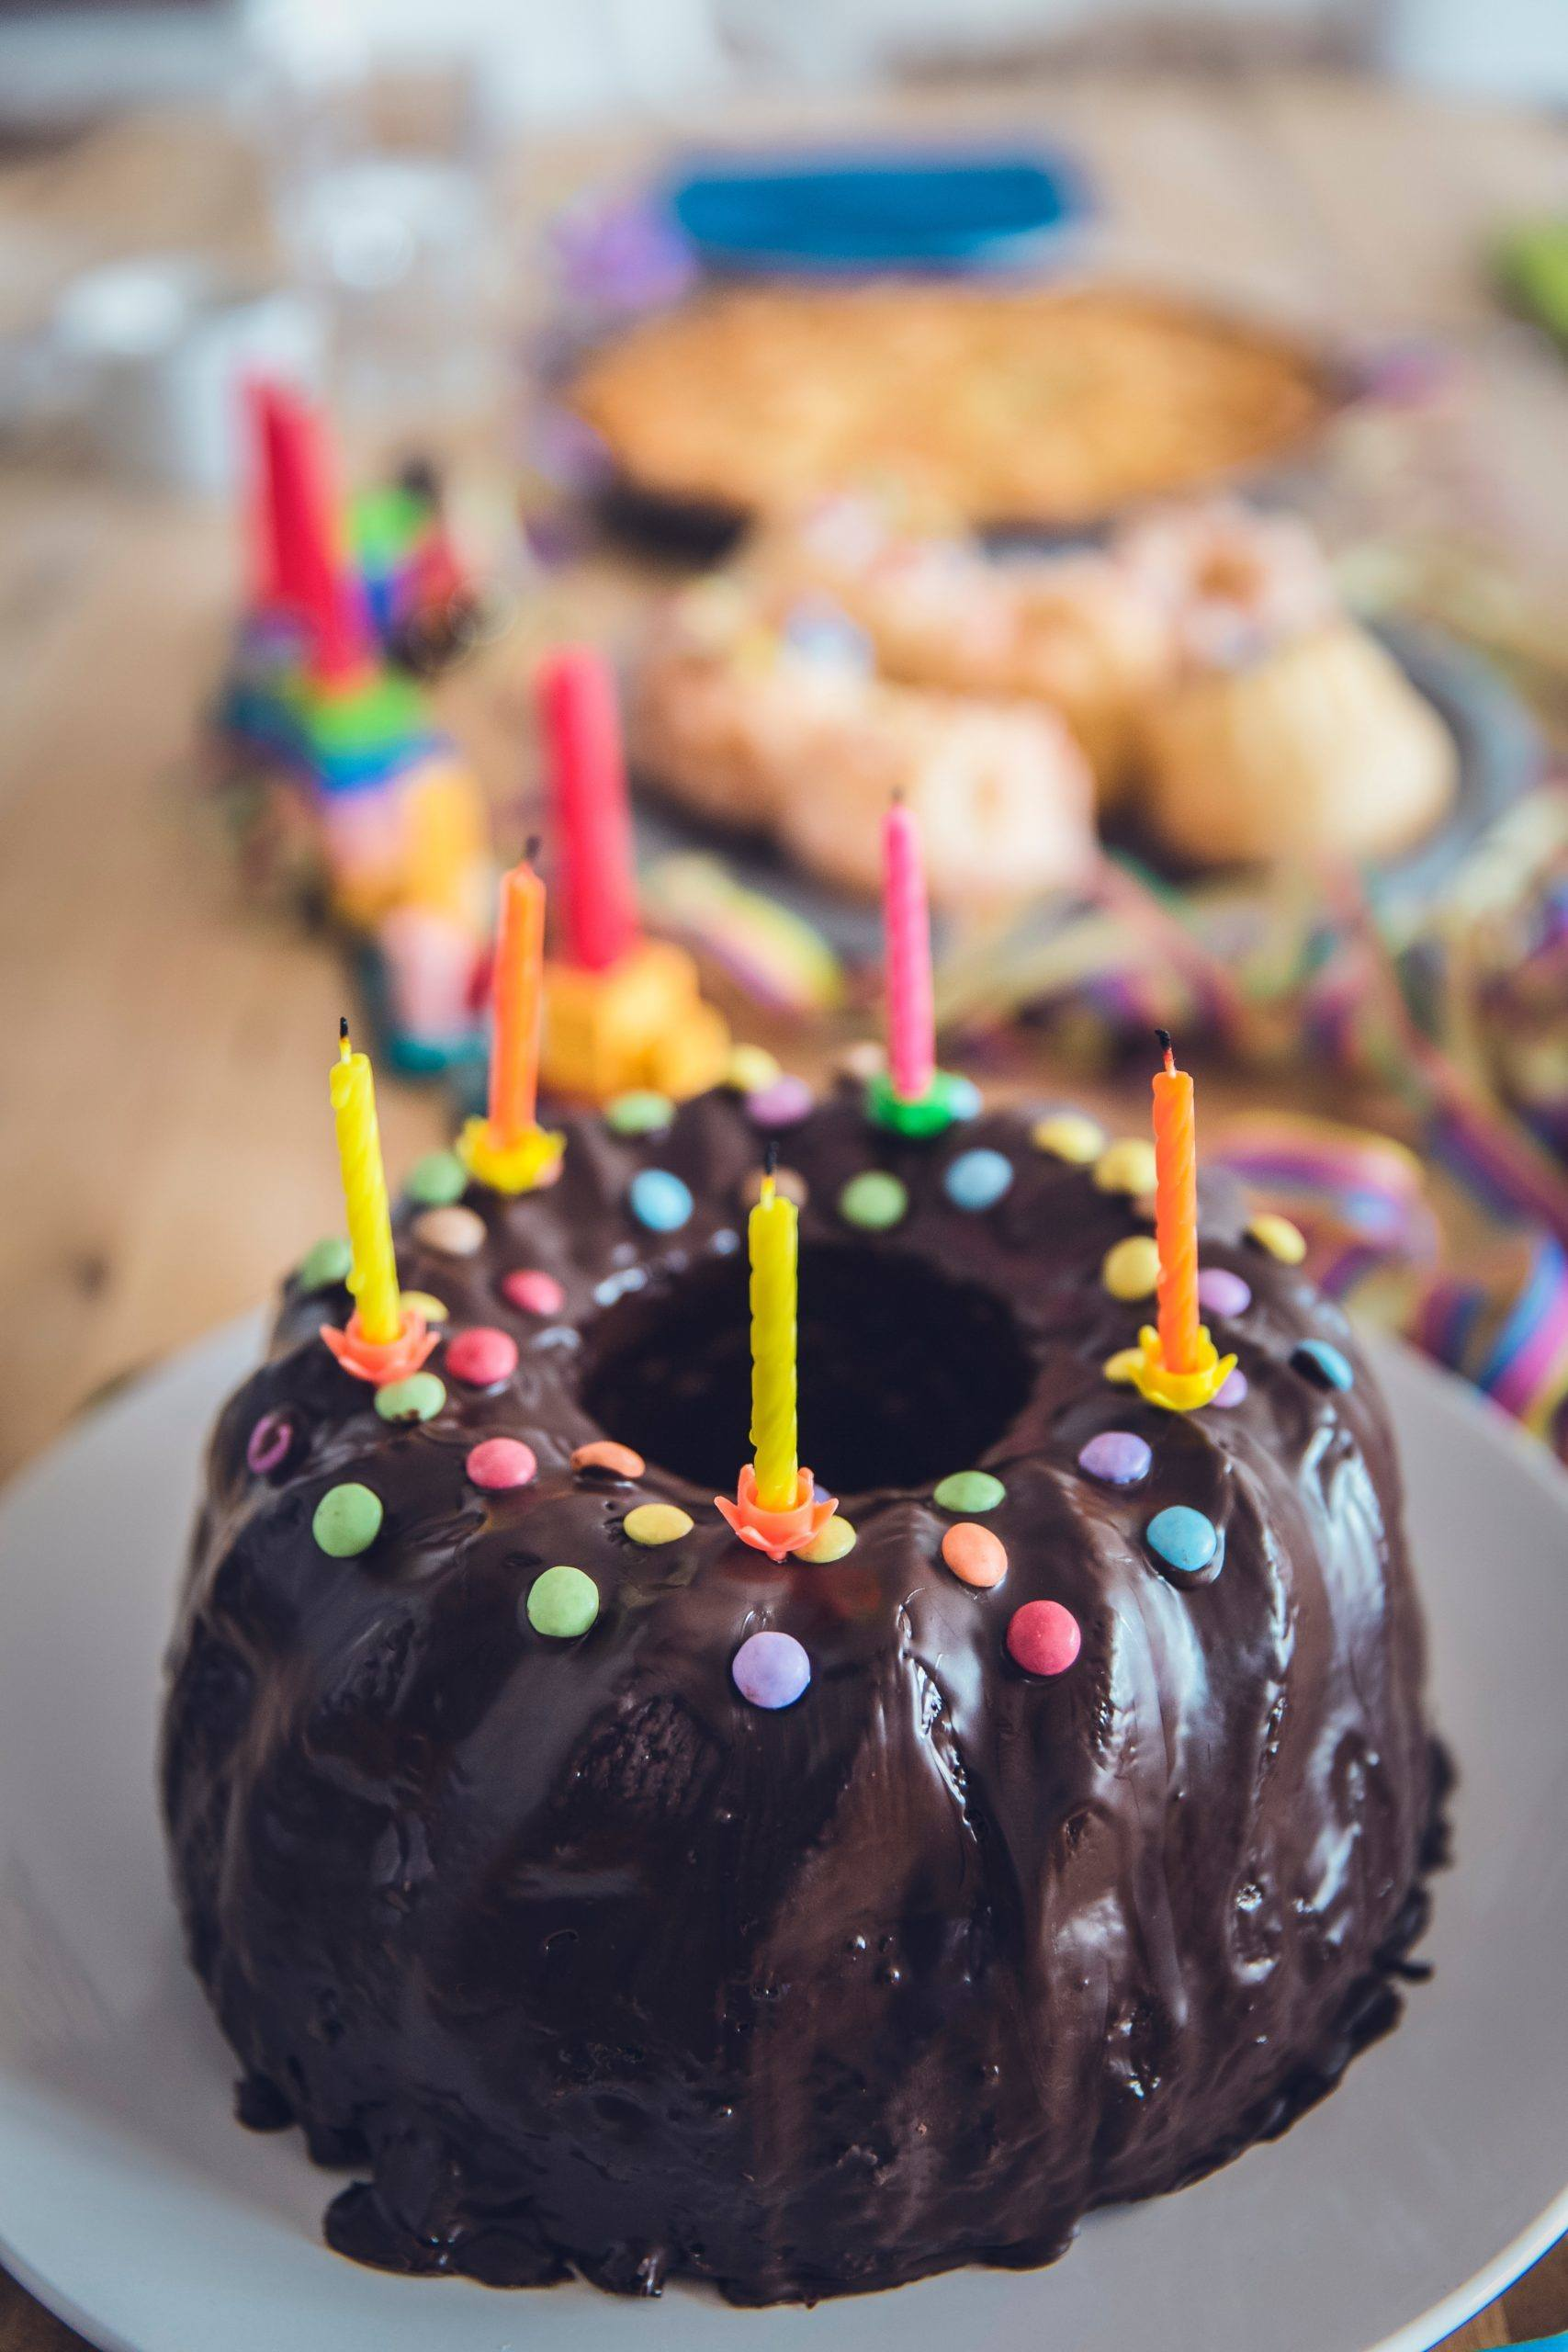 Birthday cake with candles (Photo by Markus Spiske from Pexels)